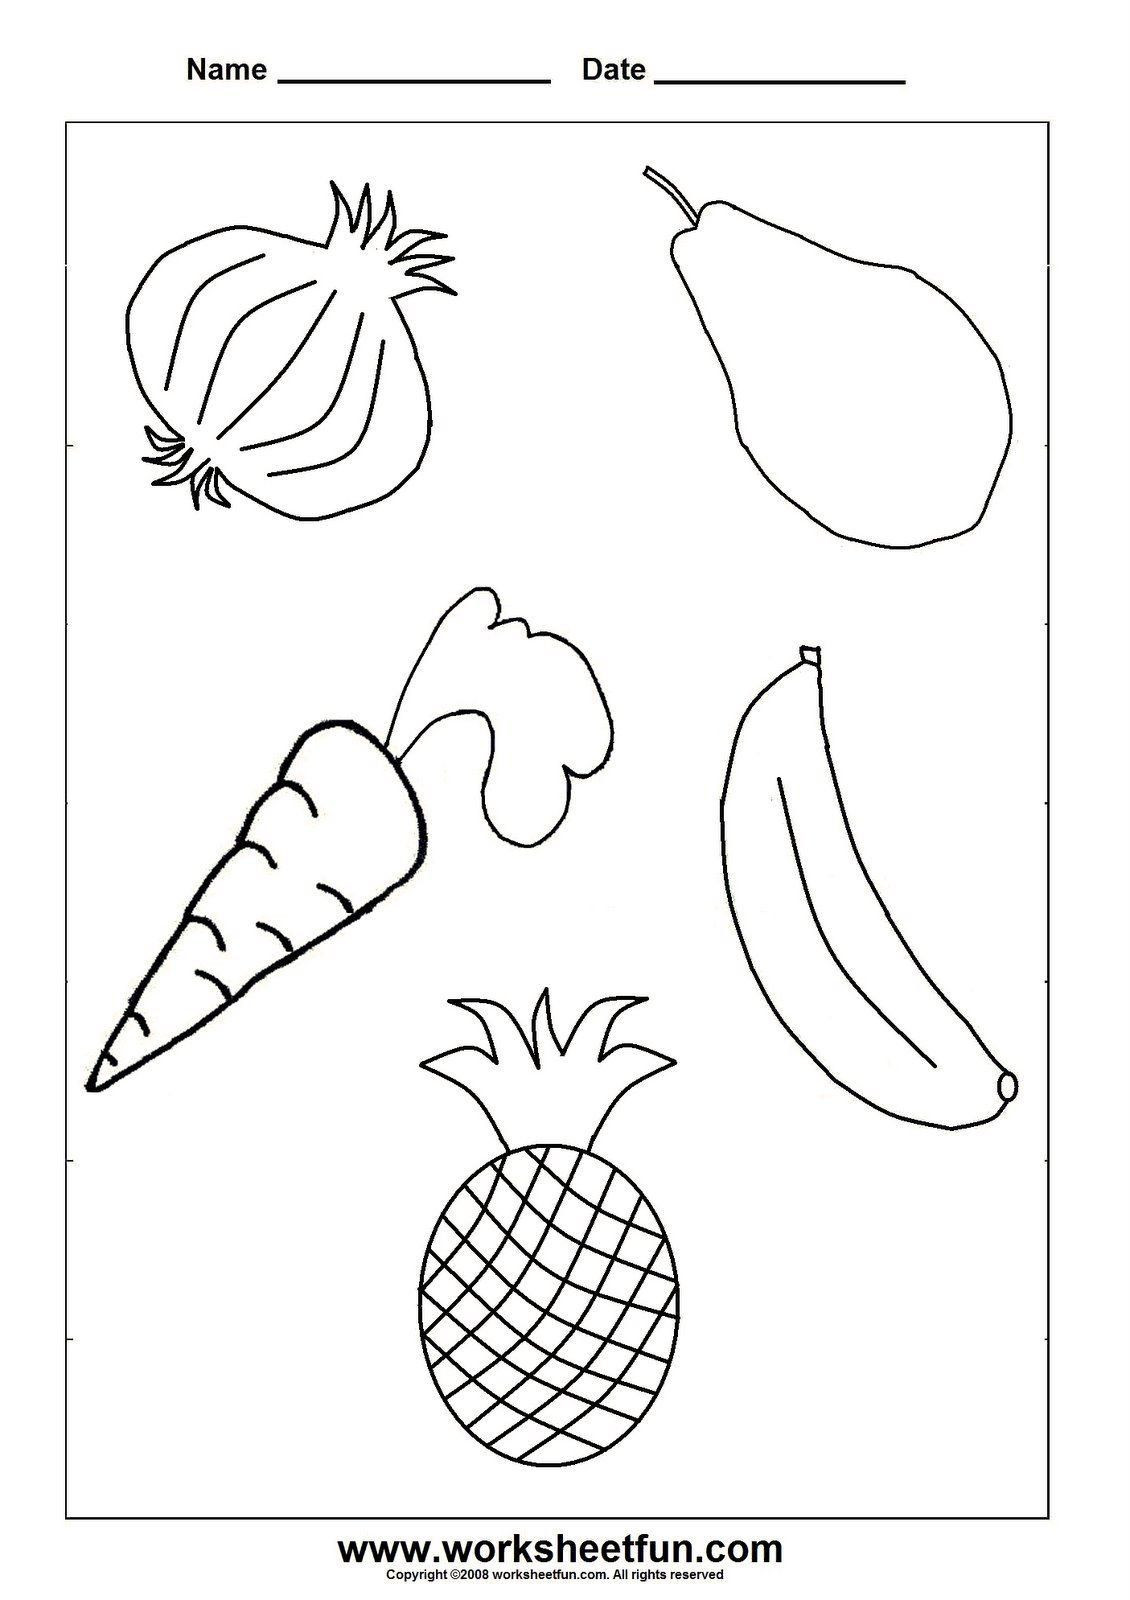 Vegetables Worksheet for Kindergarten